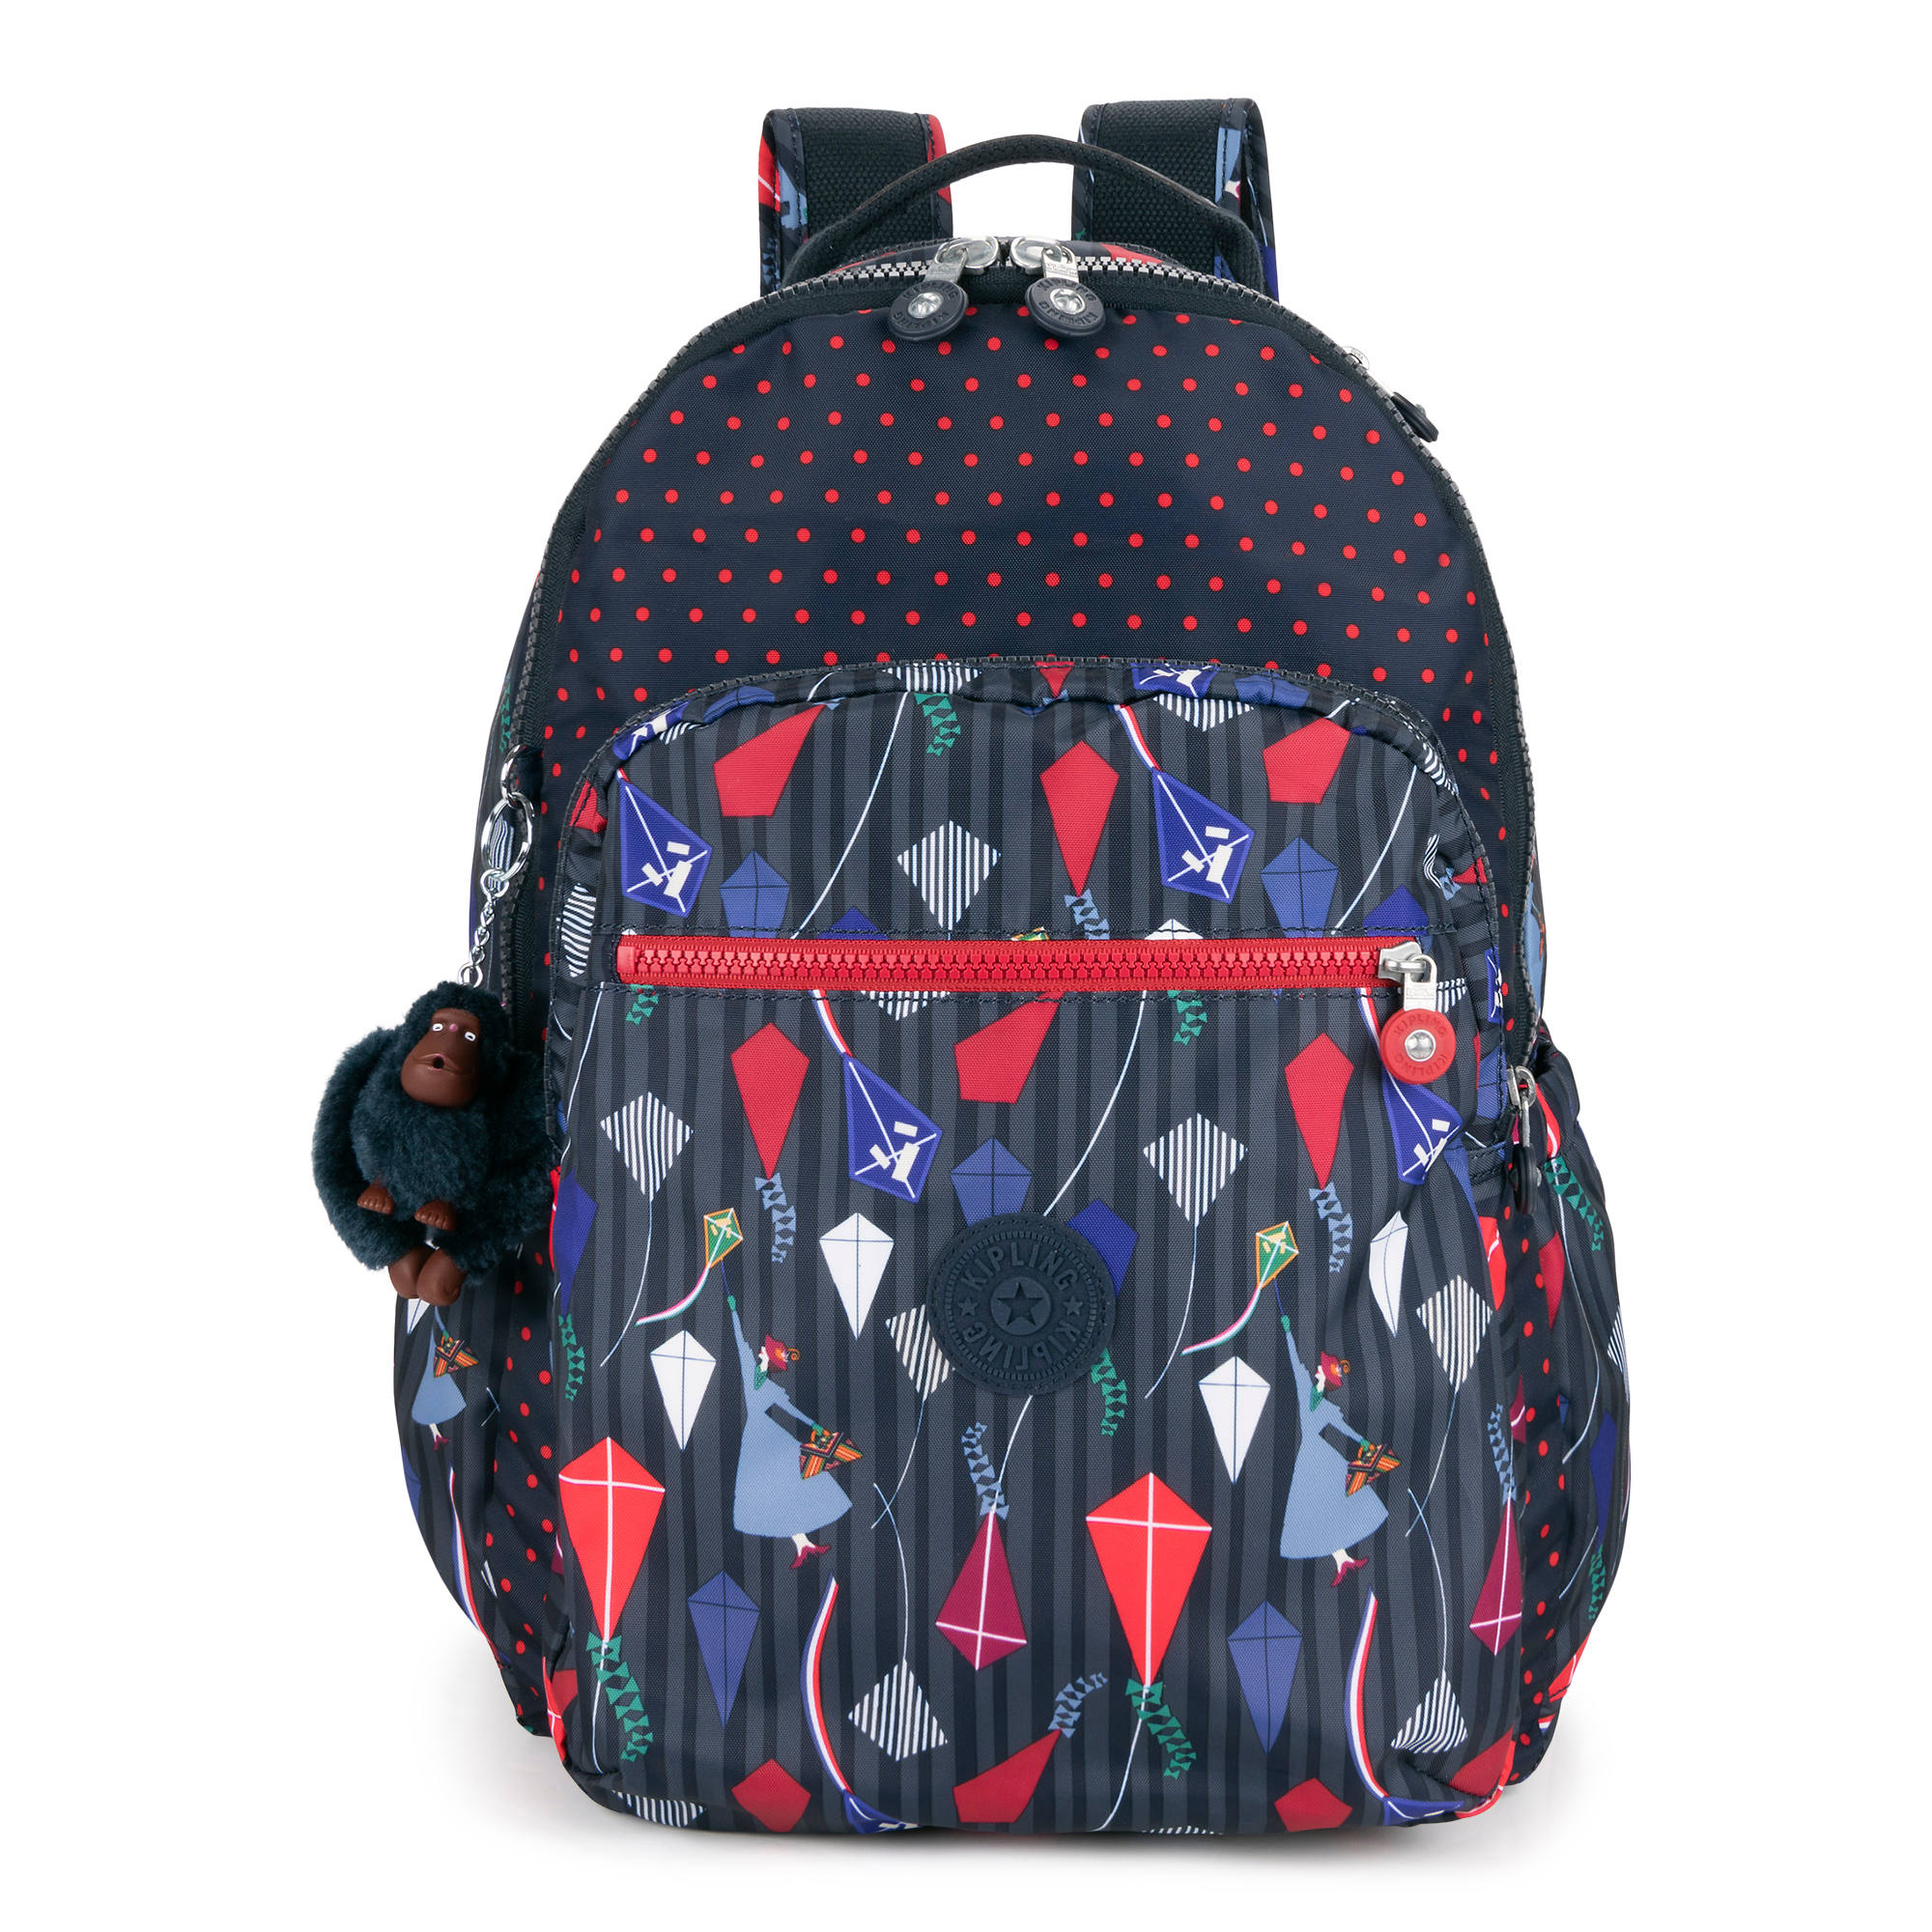 b7dcc63646 Disney's Mary Poppins Returns Seoul Go Large Printed Laptop Backpack,Fly a  Kite Mix,